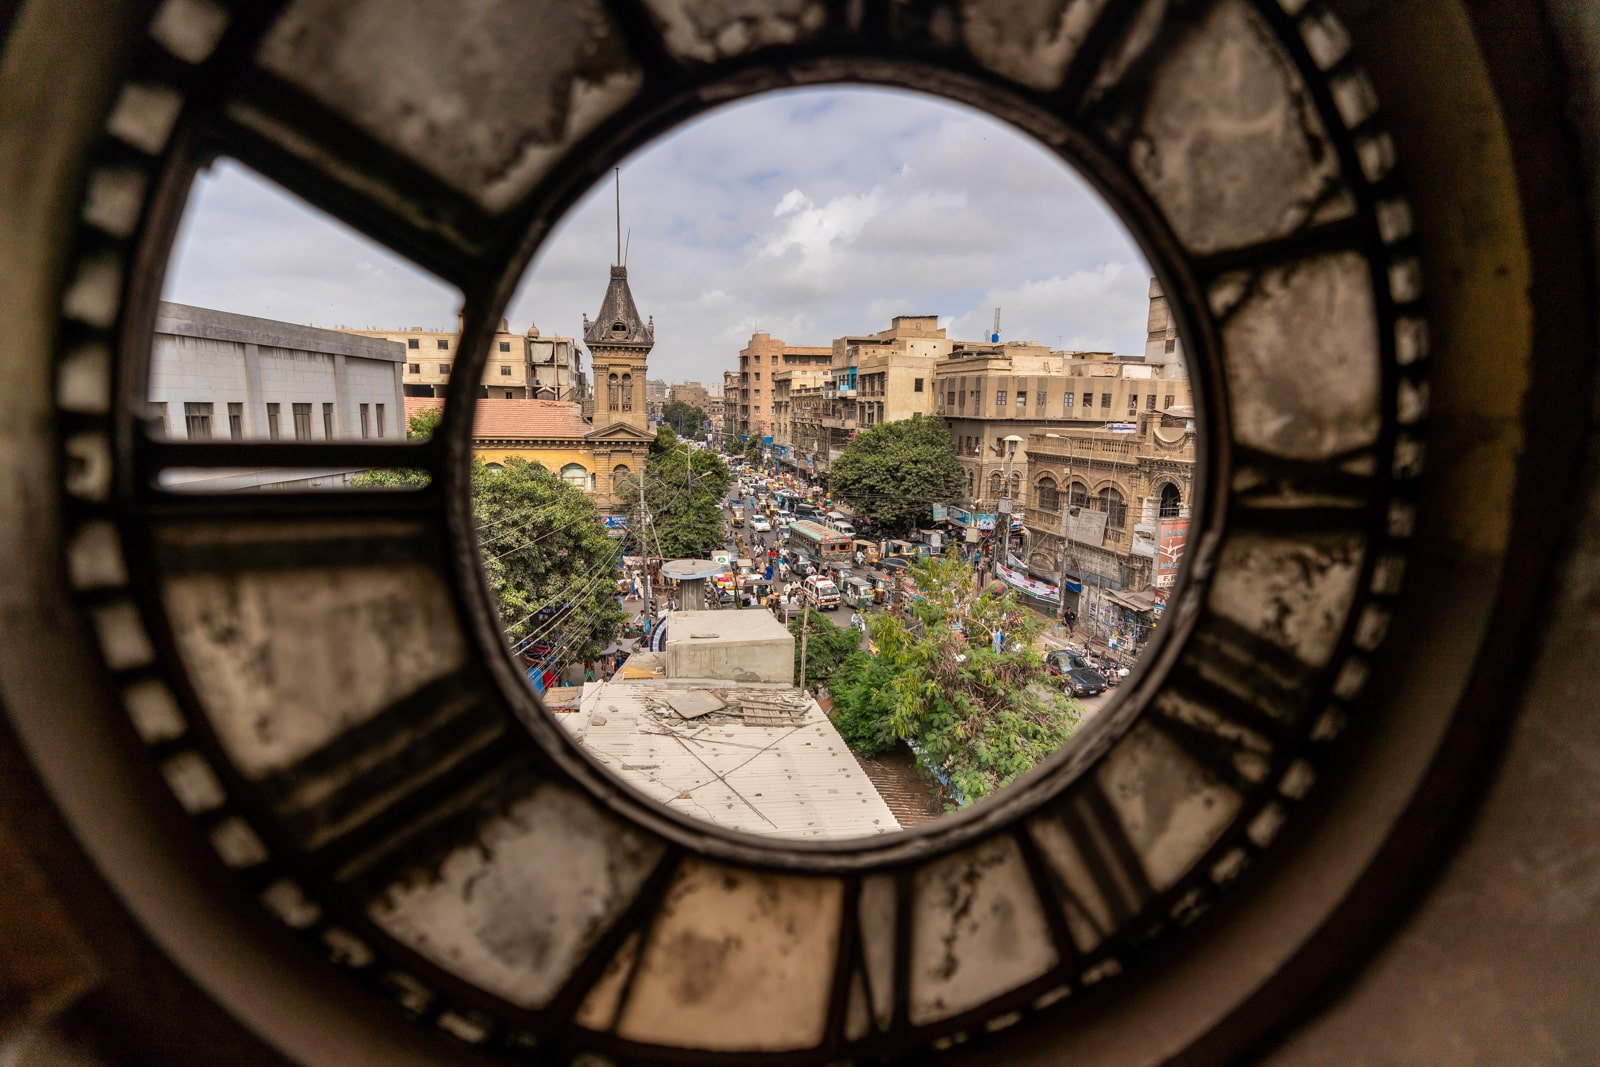 Ways of getting off the beaten track while traveling - View of Karachi through an old clock in Denso Hall - Lost With Purpose travel blog